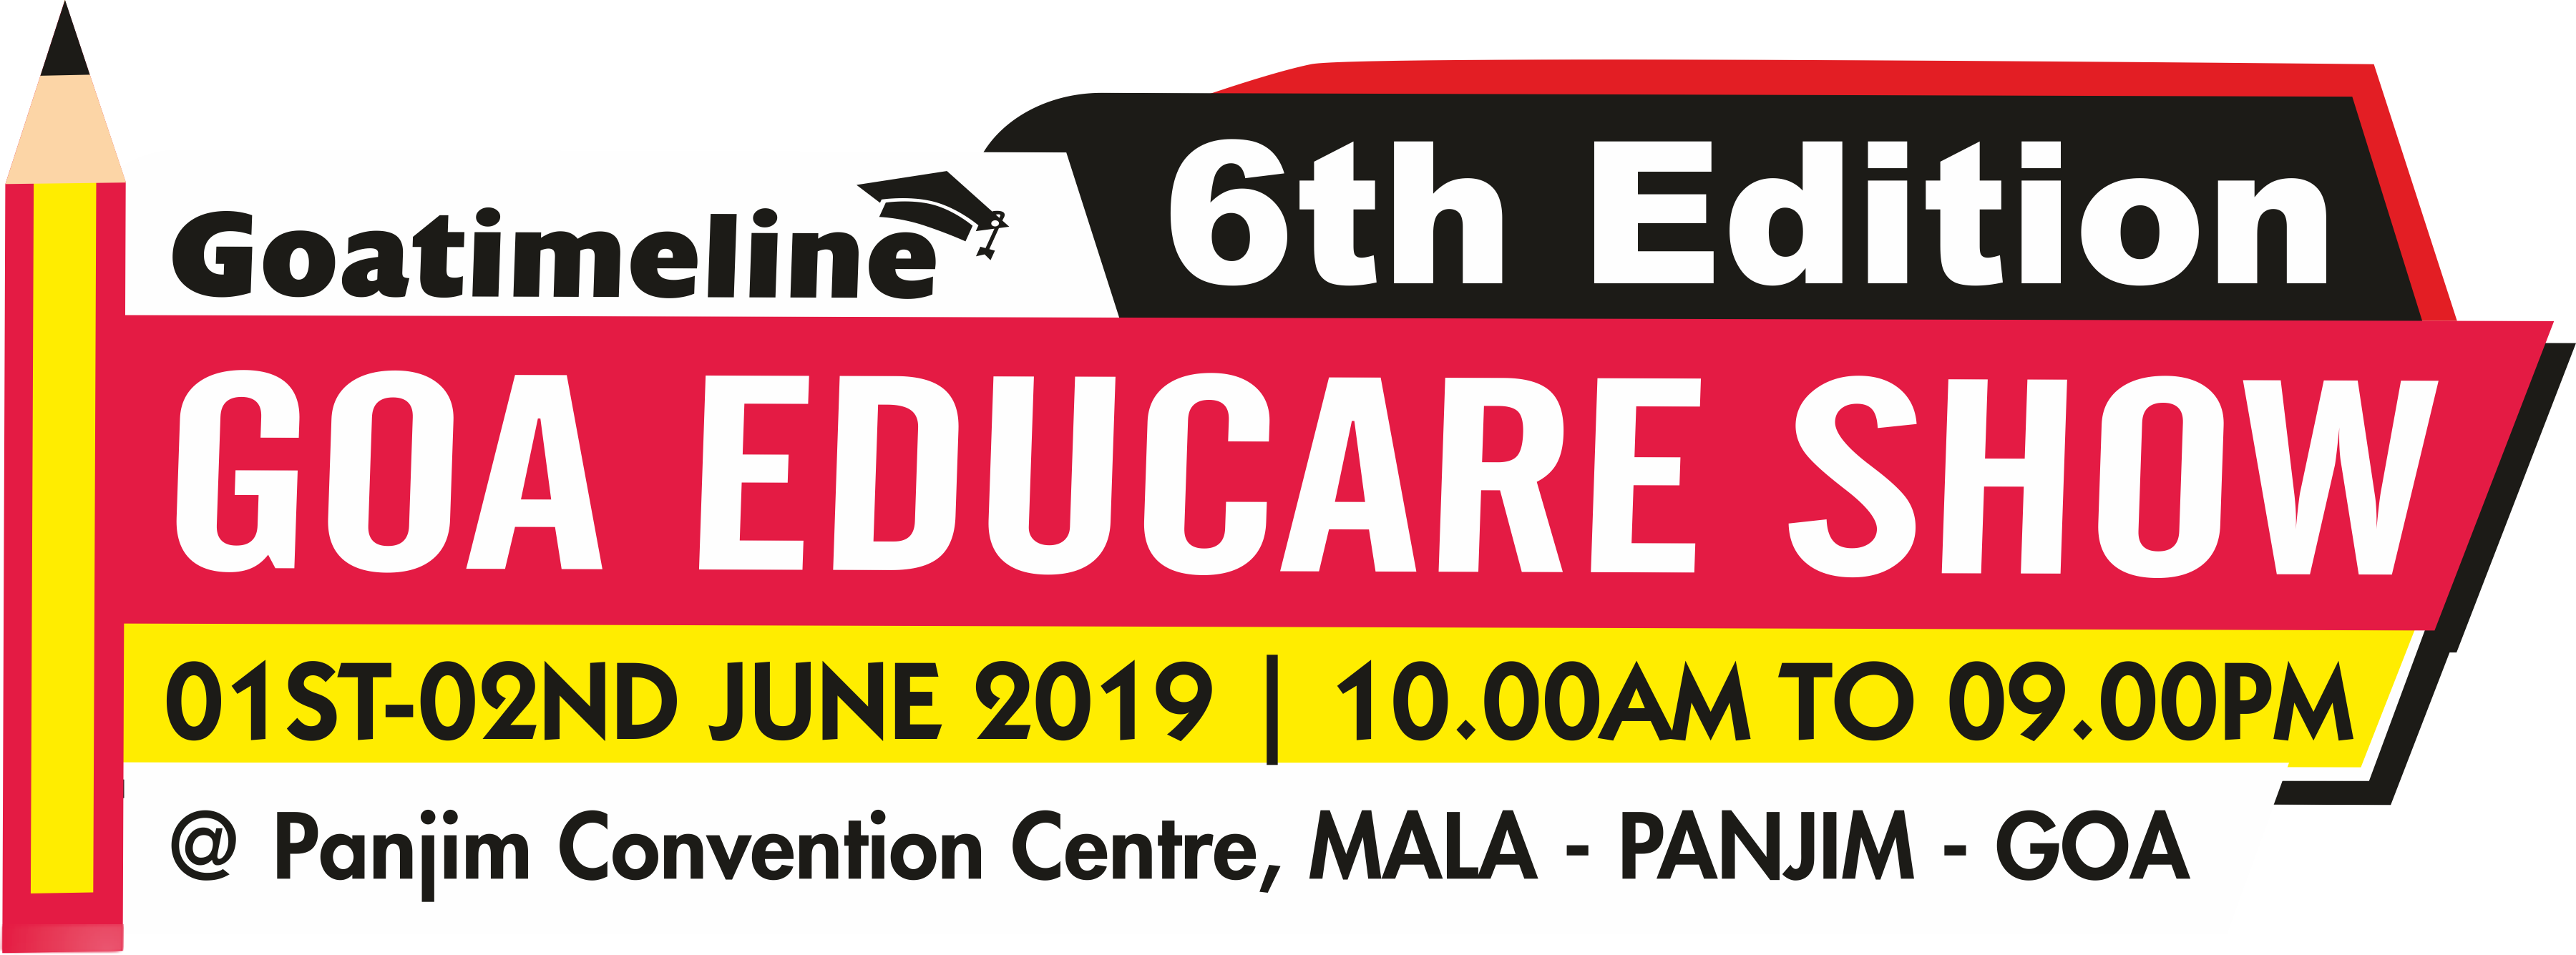 Goatimeline Goa Education Show 3rd Edition